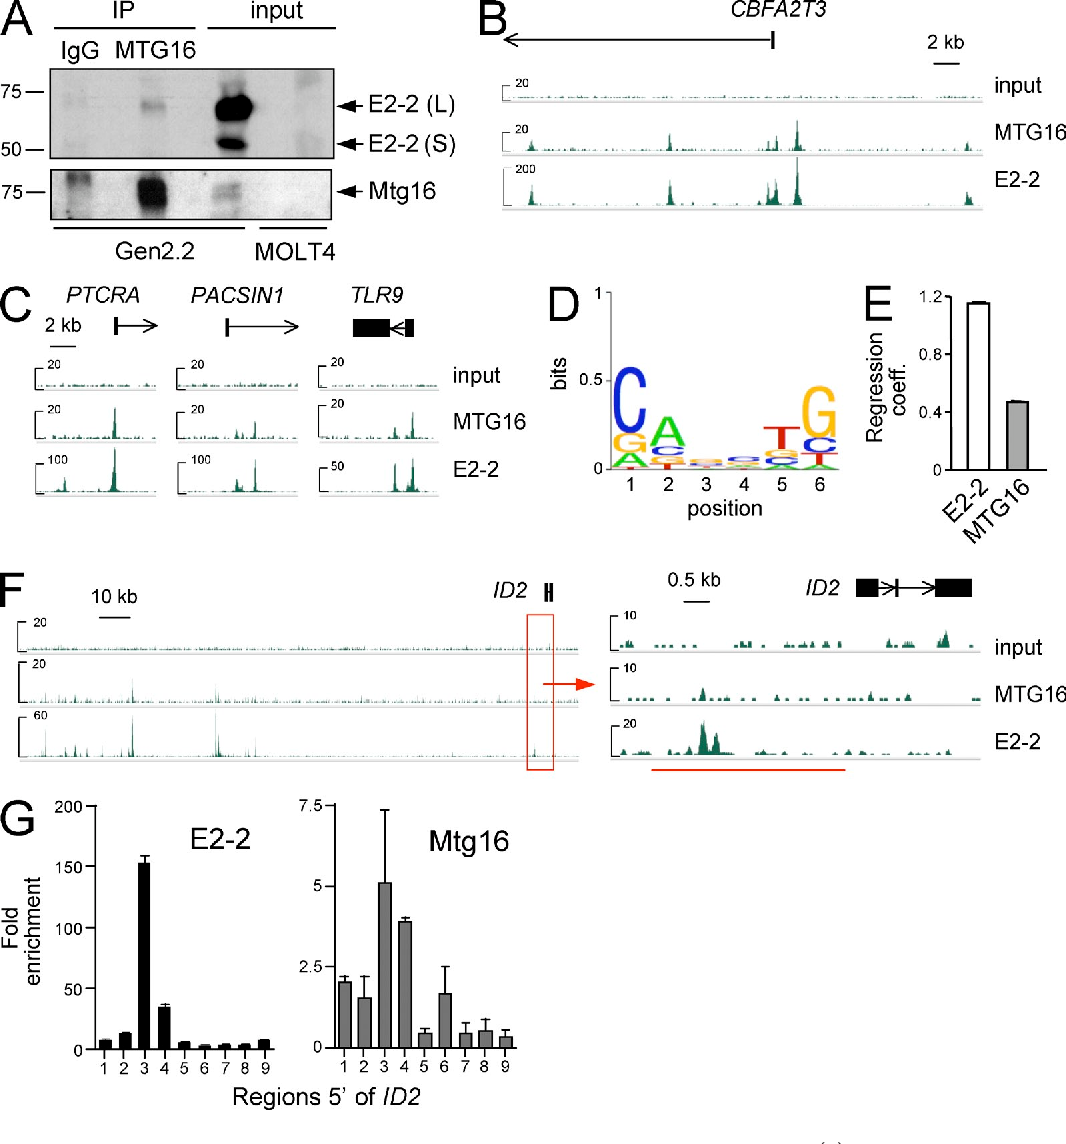 "Figure 7. Mtg16 is recruited to chromatin through E2-2 and is enriched at the ID2 locus in pDCs. (A) Coimmunoprecipitation of endogenous E2-2 and MTG16 in the human pDC cell line Gen2.2. Shown are E2-2 and MTG16 immunoblots of Gen2.2 cell lysates immunoprecipitated (IP) with control IgG or anti-MTG16 antibodies or total input from Gen2.2 or a control non-pDC cell line MOLT-4. Molecular mass markers (kilodaltons) and the long (L) and short (S) isoforms of E2-2 are indicated. Representative of two experiments; the same results were obtained in another pDC cell line, CAL-1 (not depicted). (B) Chromatin enrichment peaks at the CBFA2T3 (MTG16) locus after ChIP-Seq for MTG16 and E2-2 from human pDC cell line CAL-1. Shown are the signal tracks for the total chromatin input, MTG16, and E2-2 ChIP. (C) Chromatin enrichment peaks of MTG16 and E2-2 at the promoters of pDCenriched genes, as shown in B. (D) A consensus sequence motif of ChIP-Seq peaks of E2-2 in CAL-1 cells, with the ""height"" of each base corresponding to its frequency at a given position. (E) Regression coefficients of the linear model that predicts the binding of E2-2 or MTG16 according to the motif in D (mean ± SEM of >105 events). (F) Chromatin enrichment peaks of MTG16 and E2-2 at the ID2 locus in the human pDC cell line CAL-1. ChIP signals are shown across 180 kb of the locus and zoomed across 10 kb of its 5 region. (G) qPCR analysis of MTG16 and E2-2 binding to the ID2 promoter in CAL-1. Unamplified chromatin from MTG16 and E2-2 ChIP was analyzed by qPCR with nine primers evenly spanning the 4-kb region 5 of ID2 (red underline in F). Results represent mean ± SD of triplicate PCR reactions from a single experiment; enrichment of the fragment #3 has been confirmed in an independent experiment and also observed in pDC cell line Gen2.2."